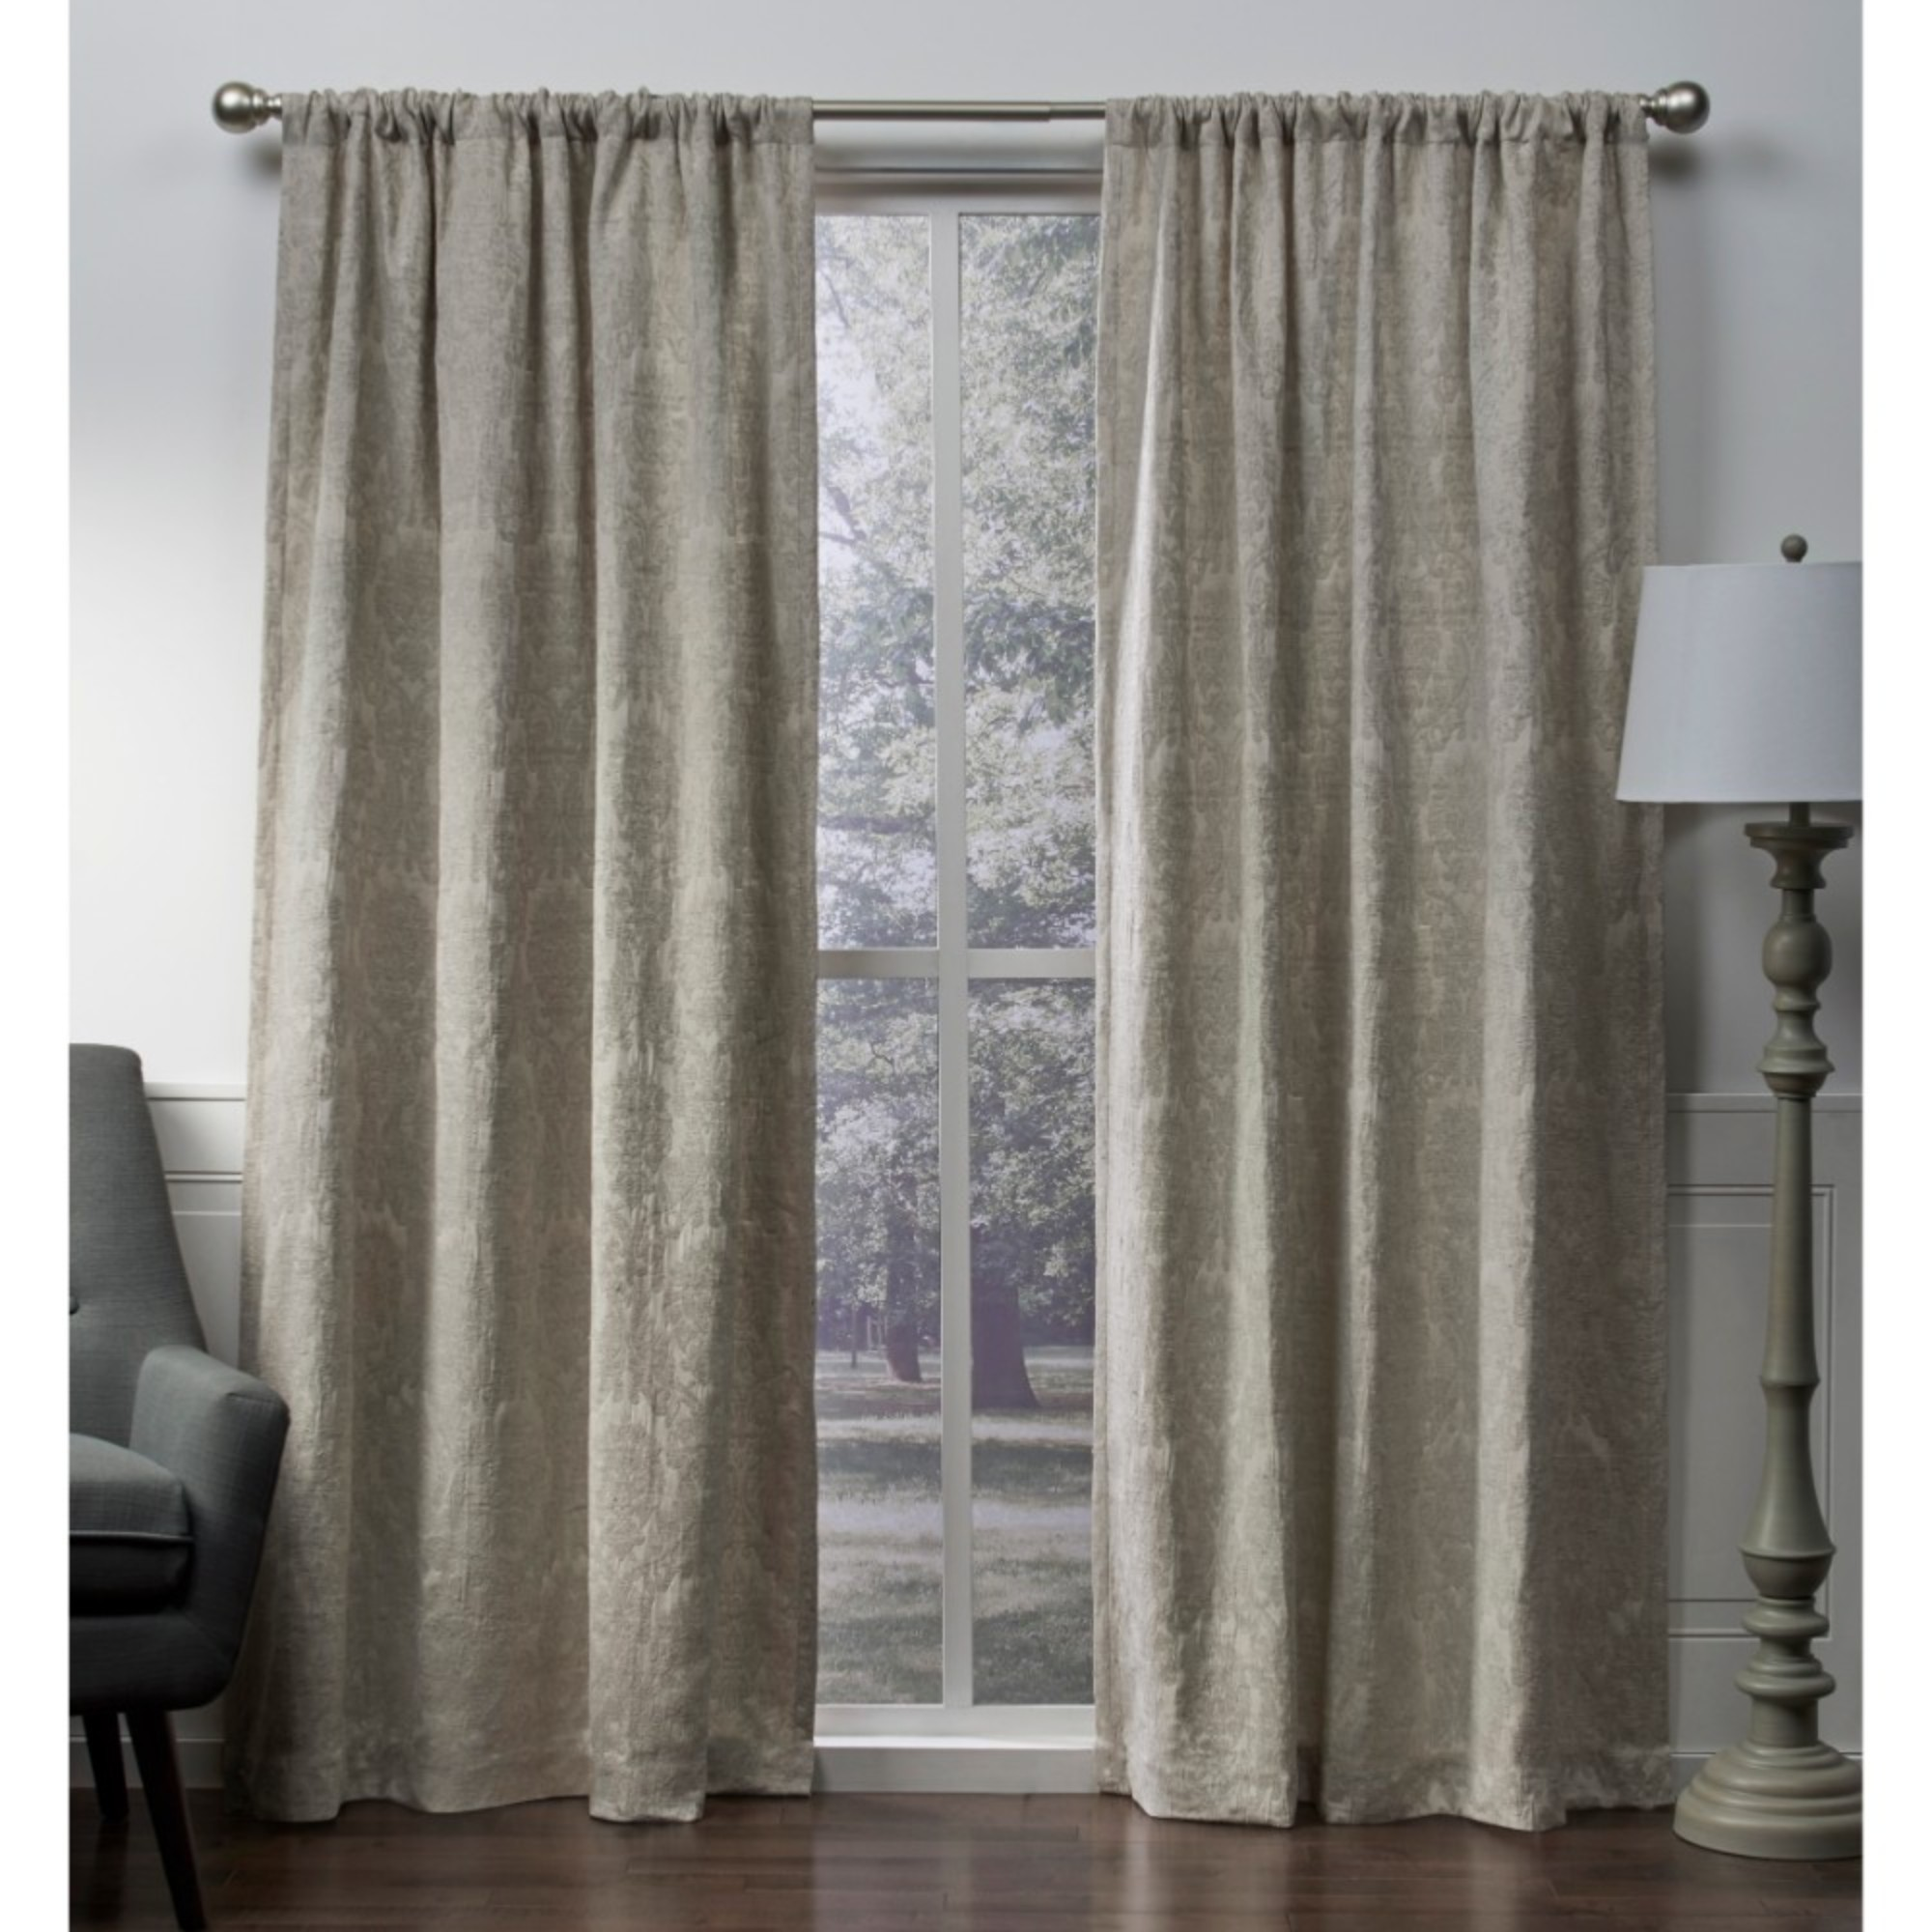 Exclusive Home Curtains 2 Pack Damask Chenille Heavyweight Jacquard Medallion Rod Pocket Curtain Panels